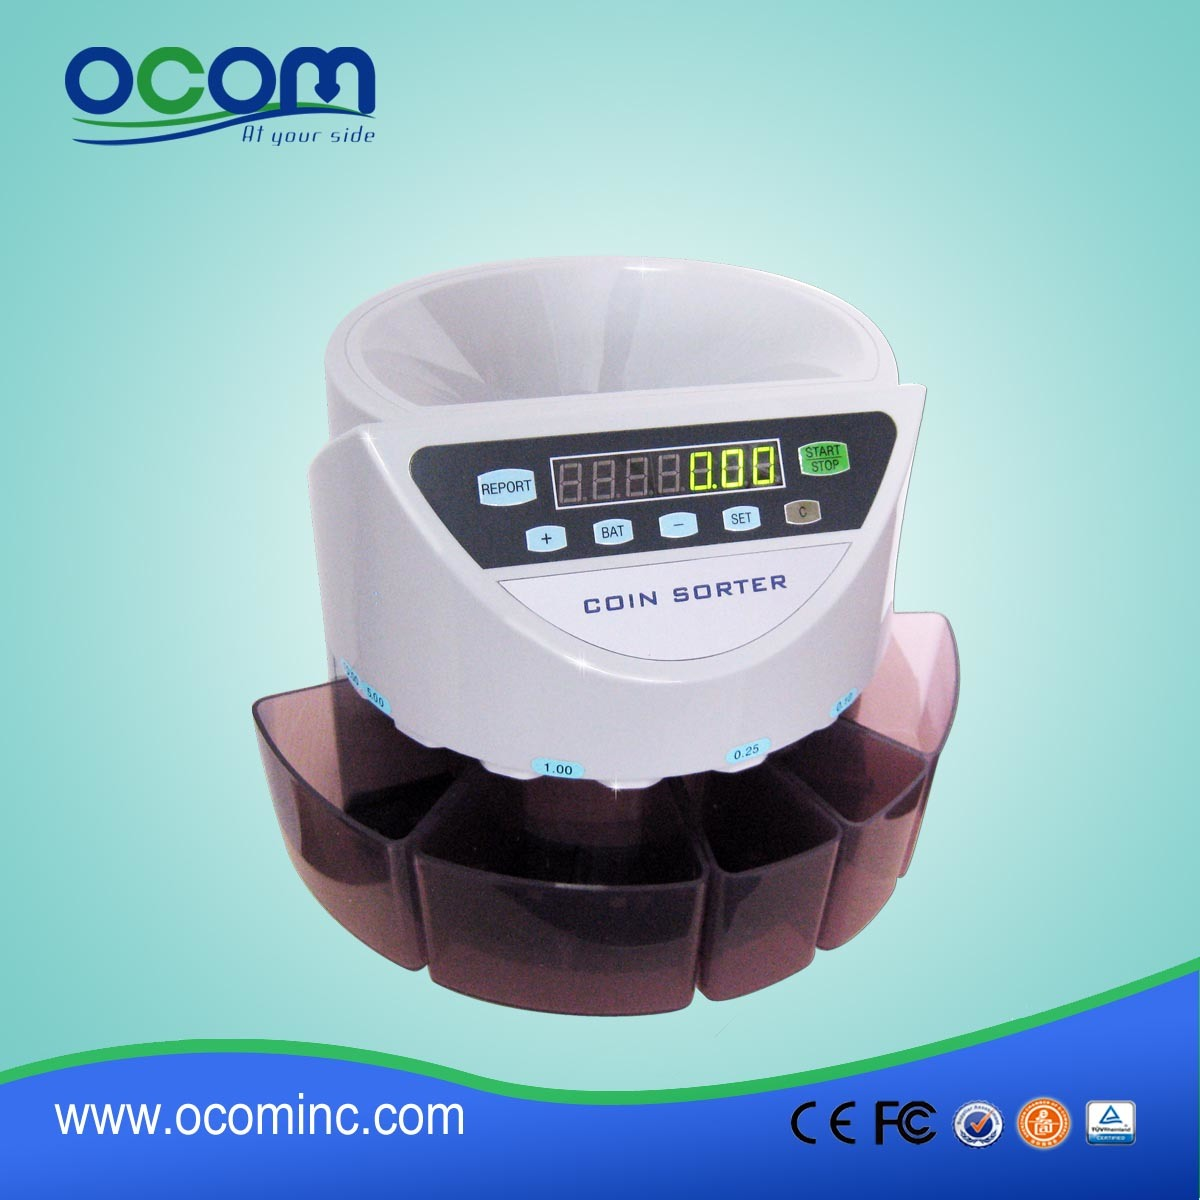 Auto Counting Coin Counter